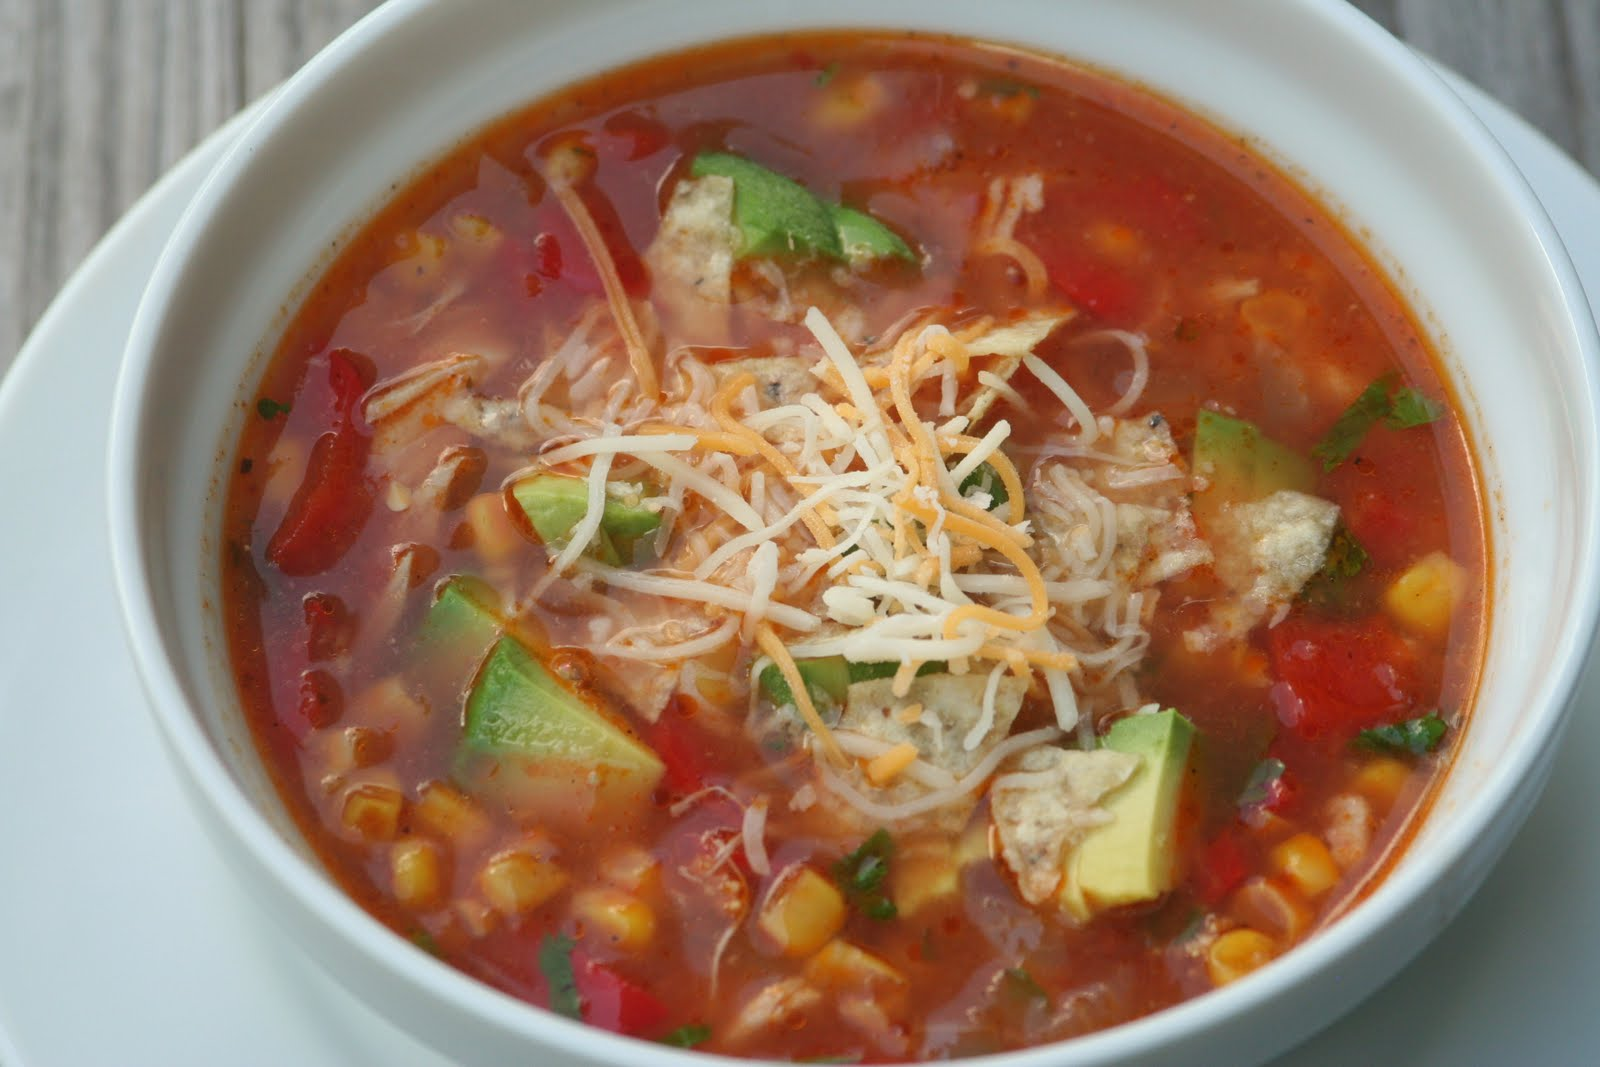 Healthy Goodness: Hearty Tortilla Soup